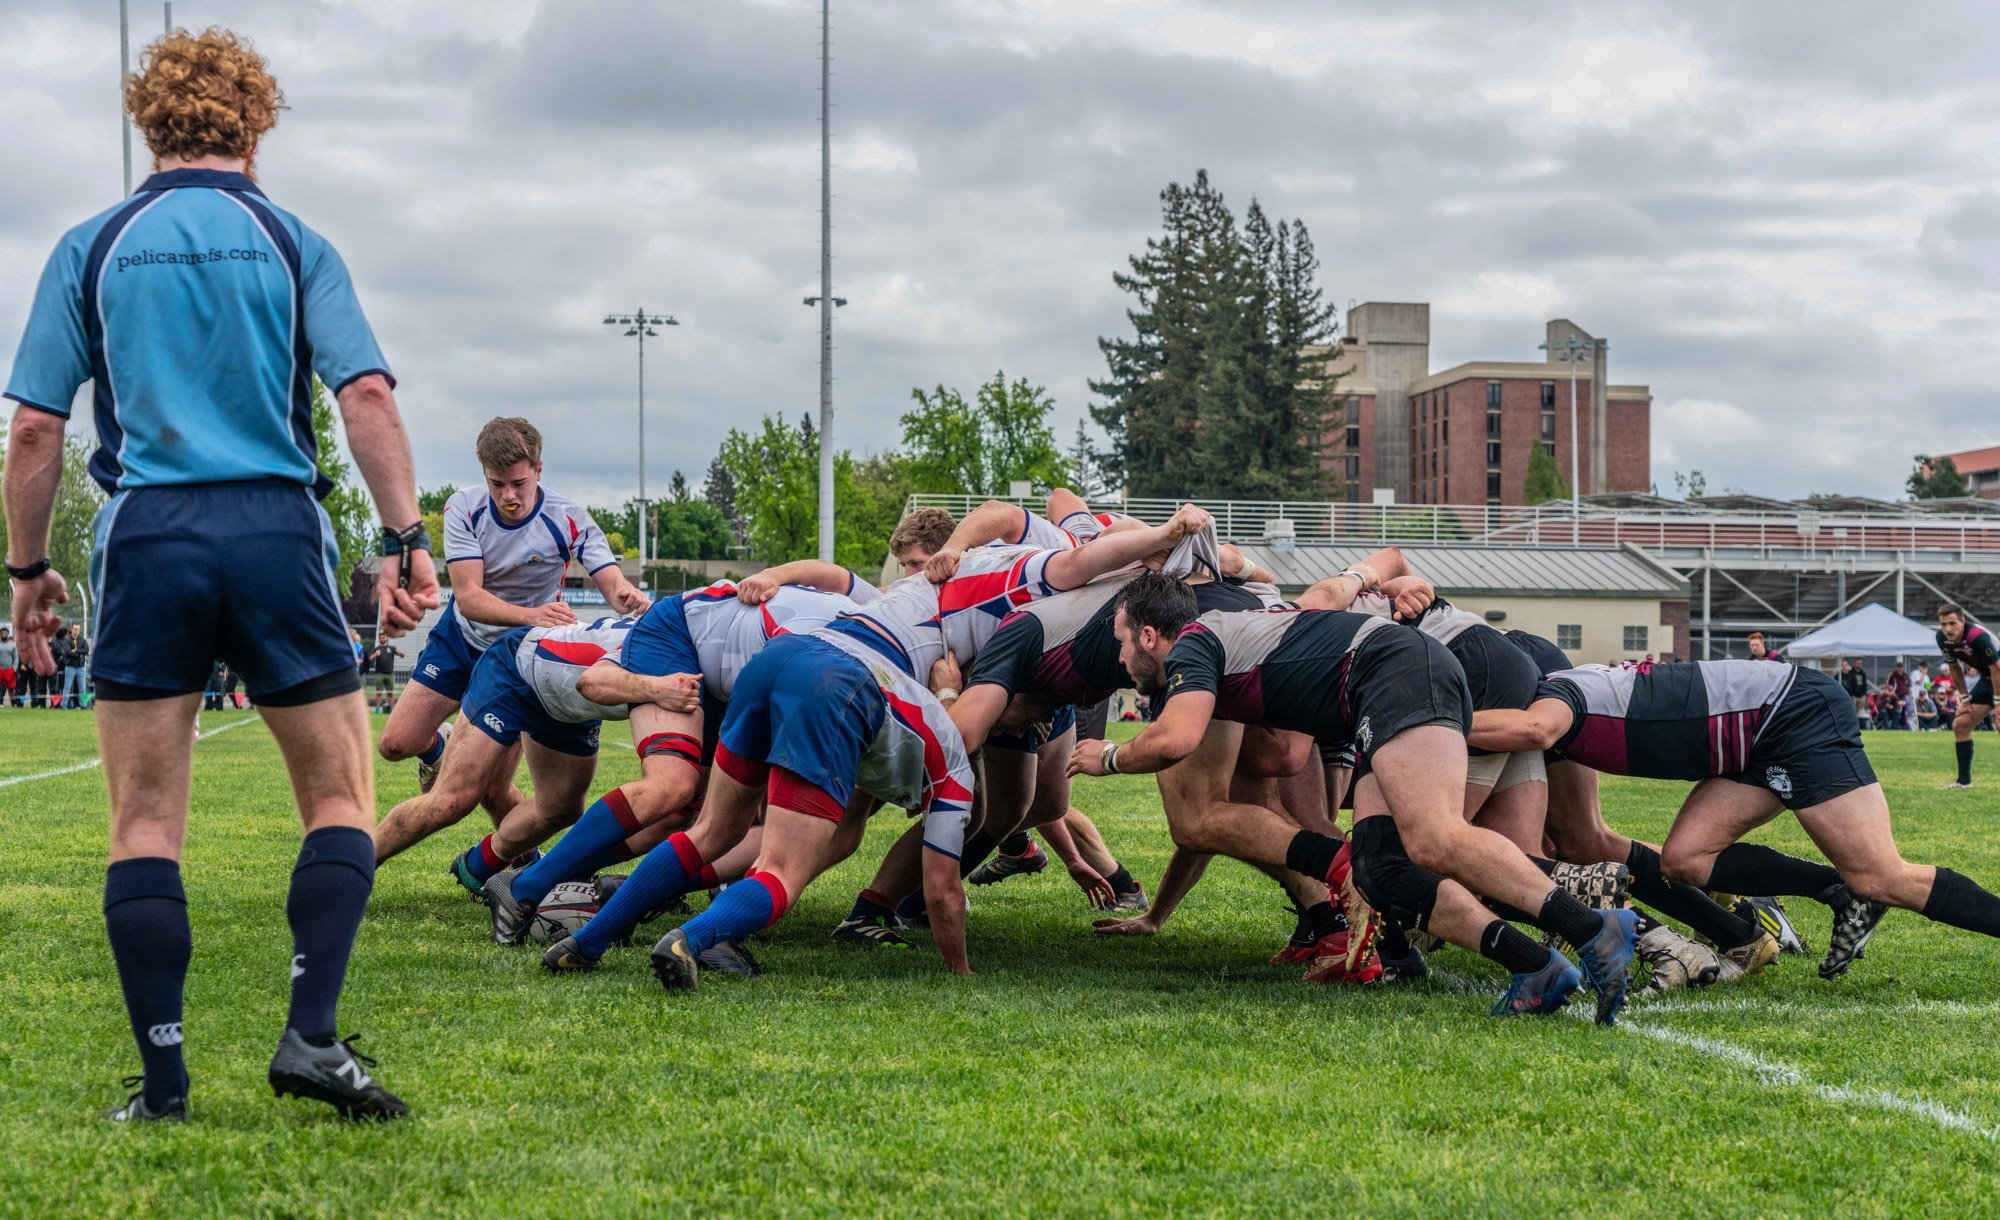 Solo Creative Services Rugby Photo - Website Design & Photography Based in Chico, CA